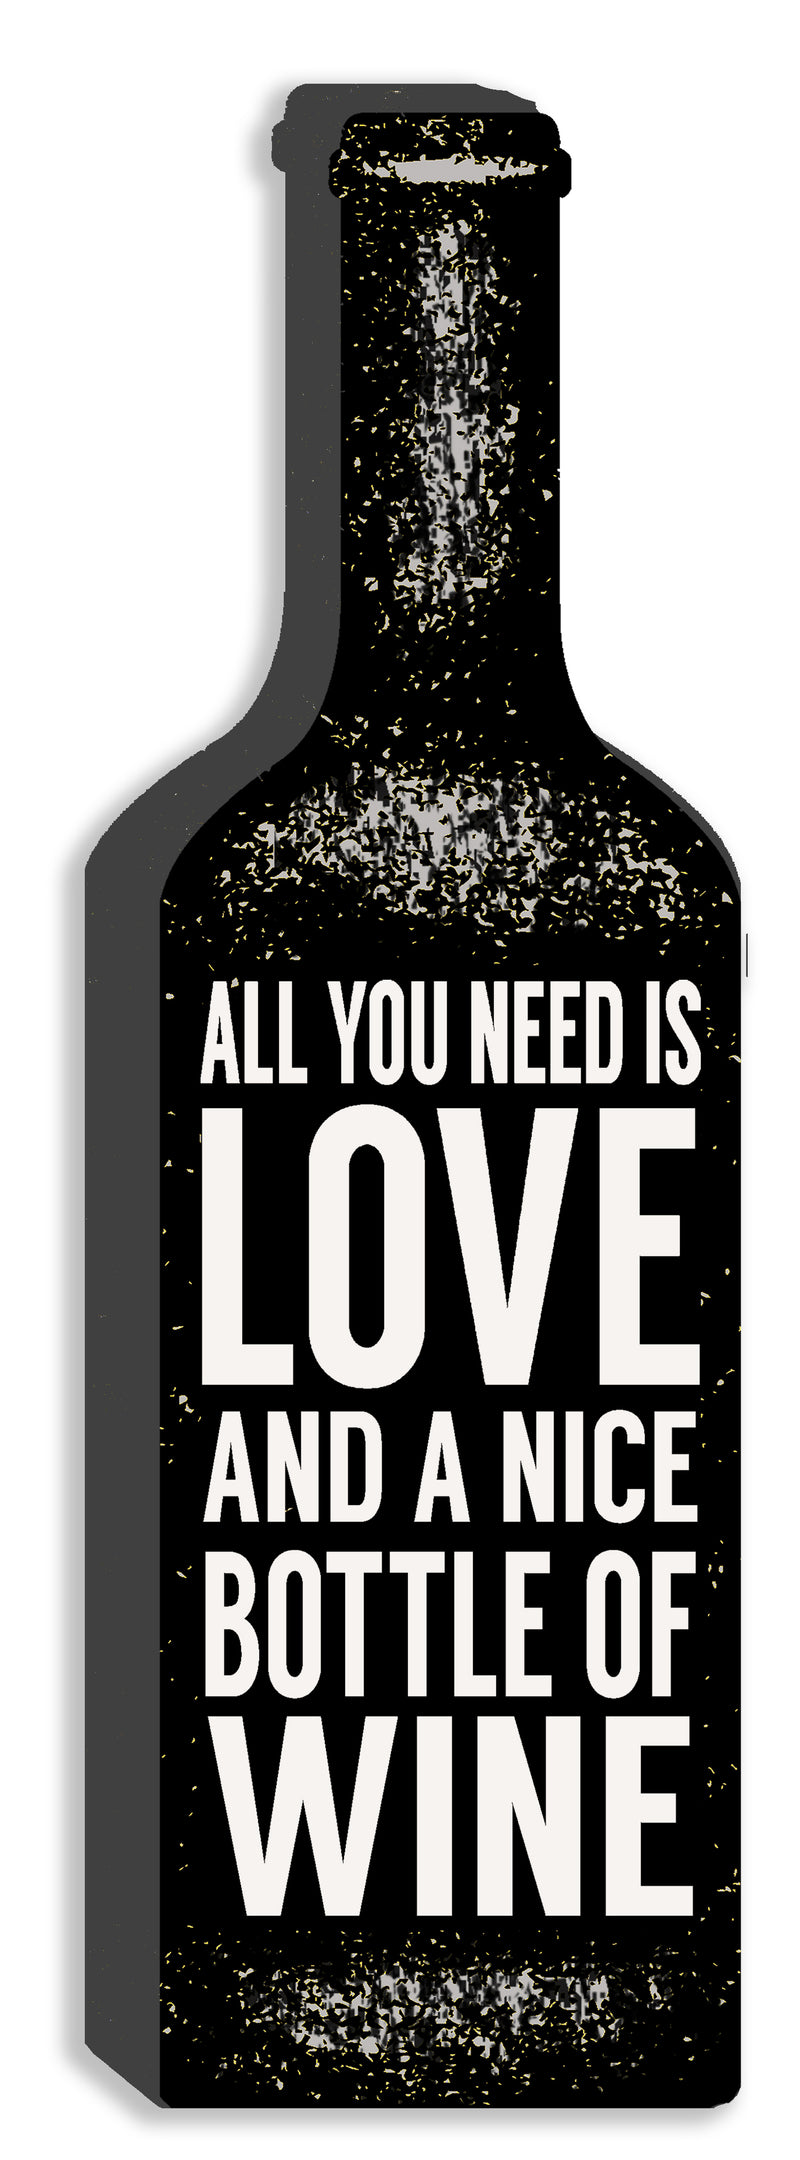 'All You Need Is Love And A Nice Bottle Of Wine' Cut Out 12X4